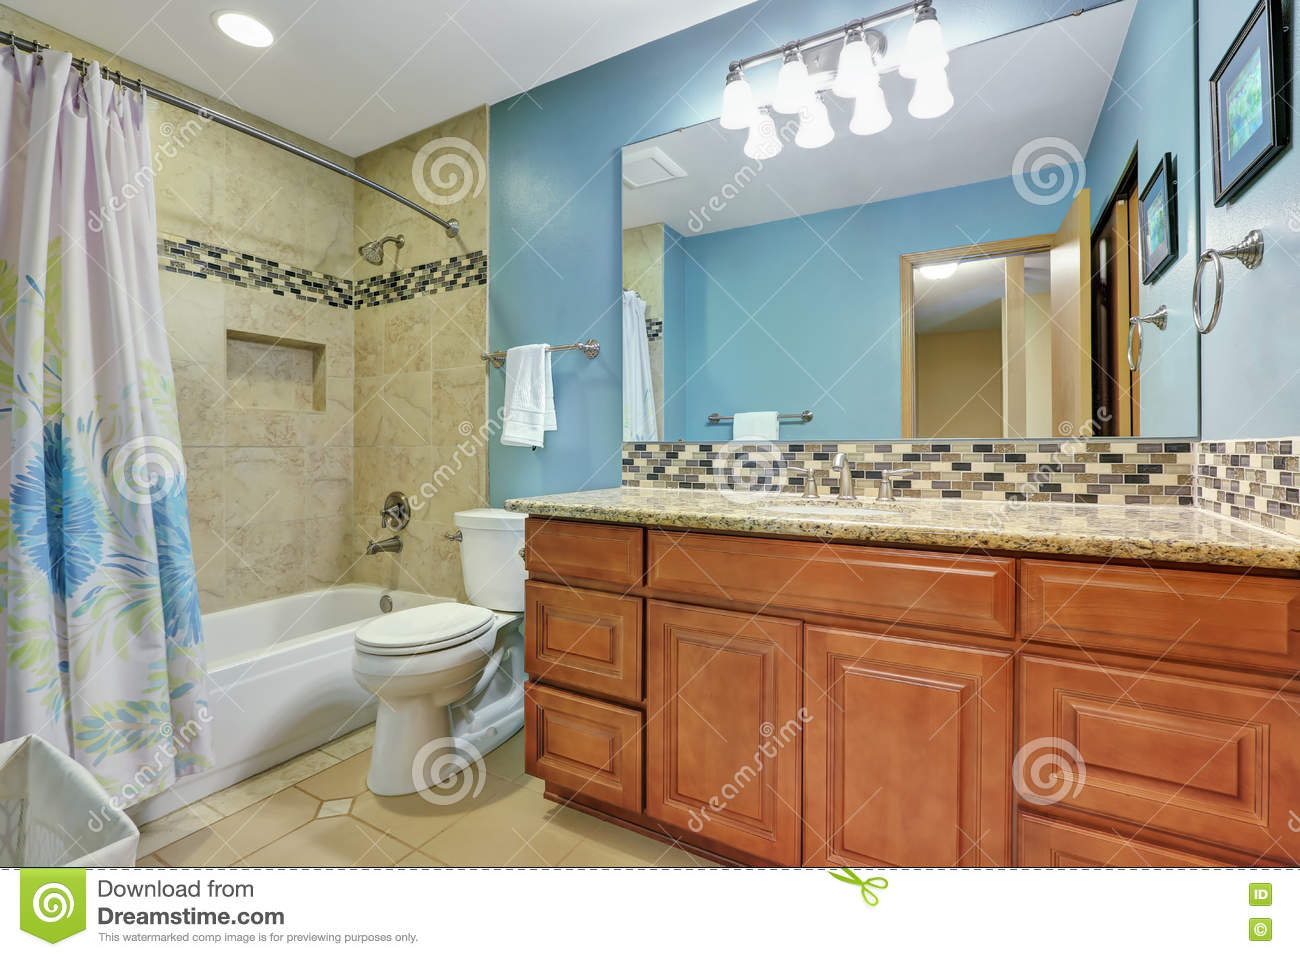 Blue Bathroom Interior With Mosaic Back Splash Stock Image - Image ...